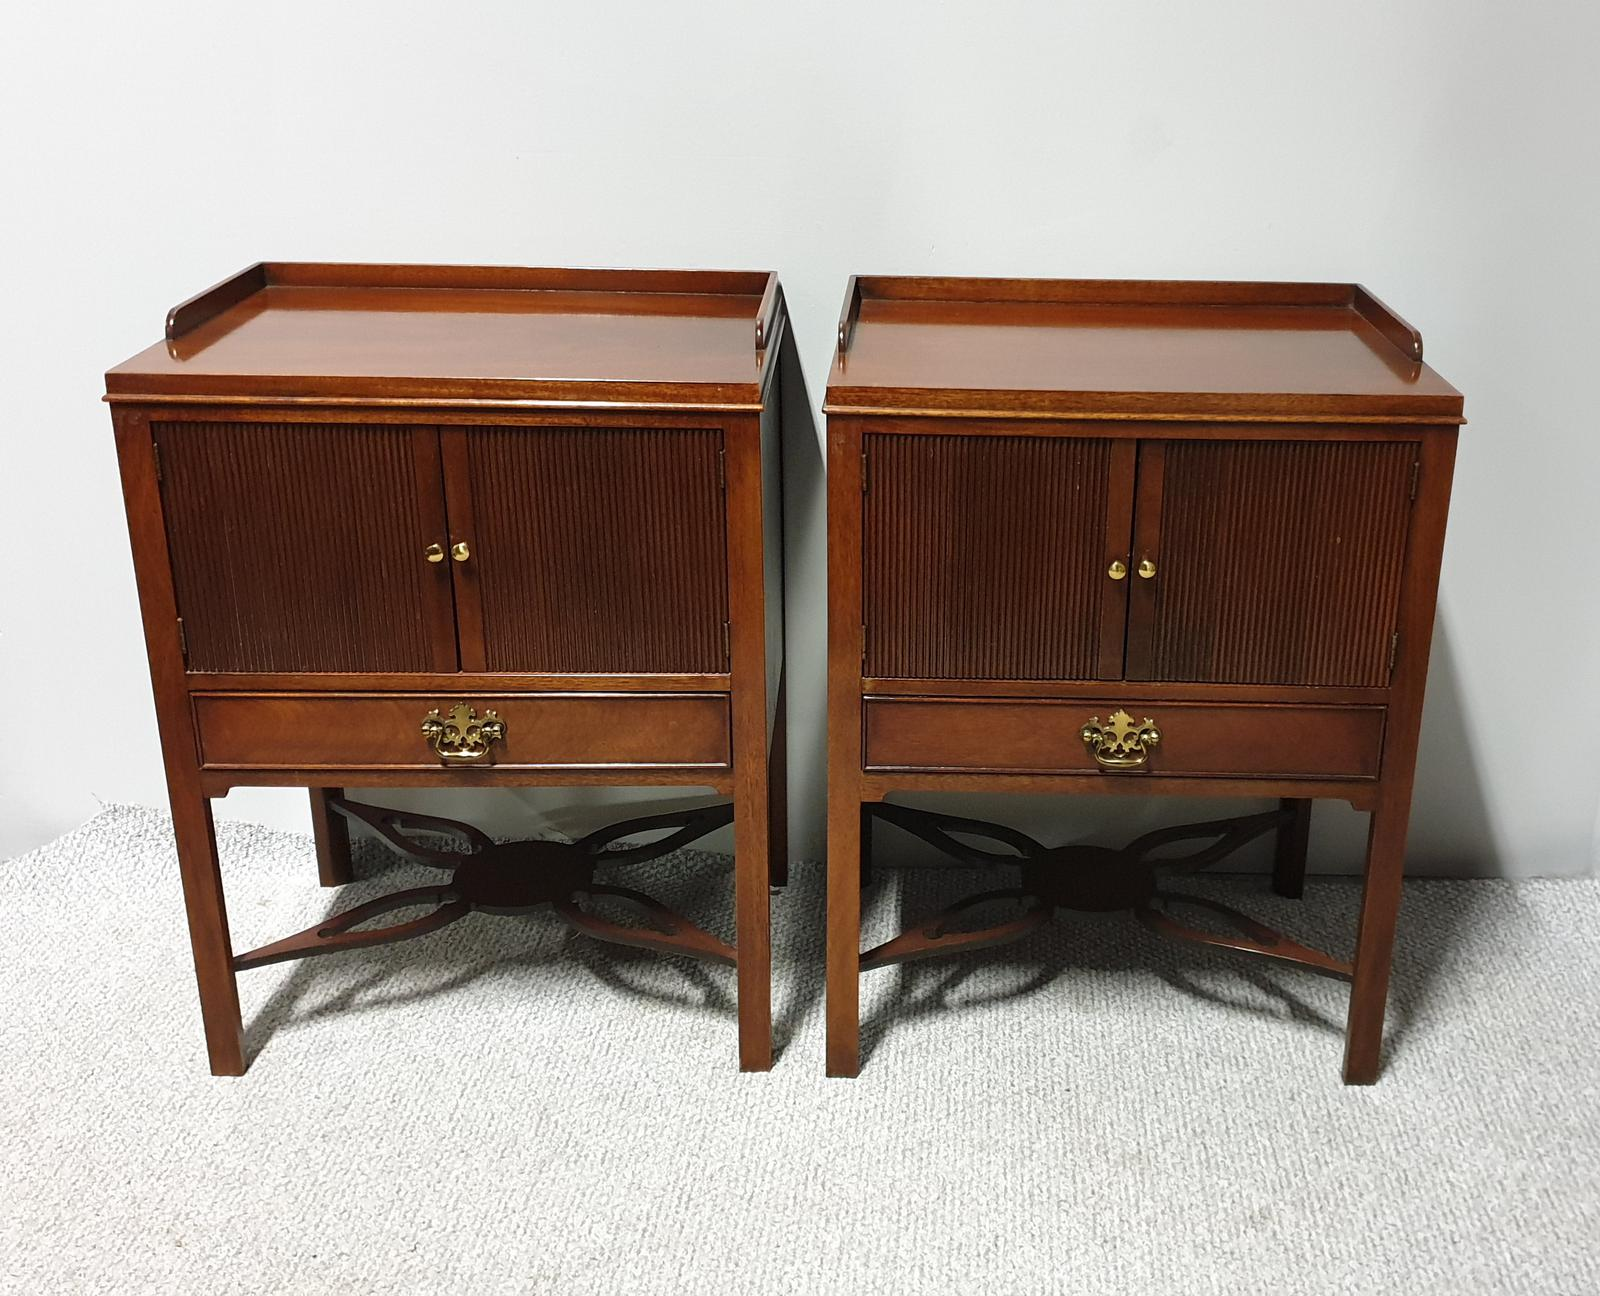 Pair of Mahogany Bedside Cabinets (1 of 1)